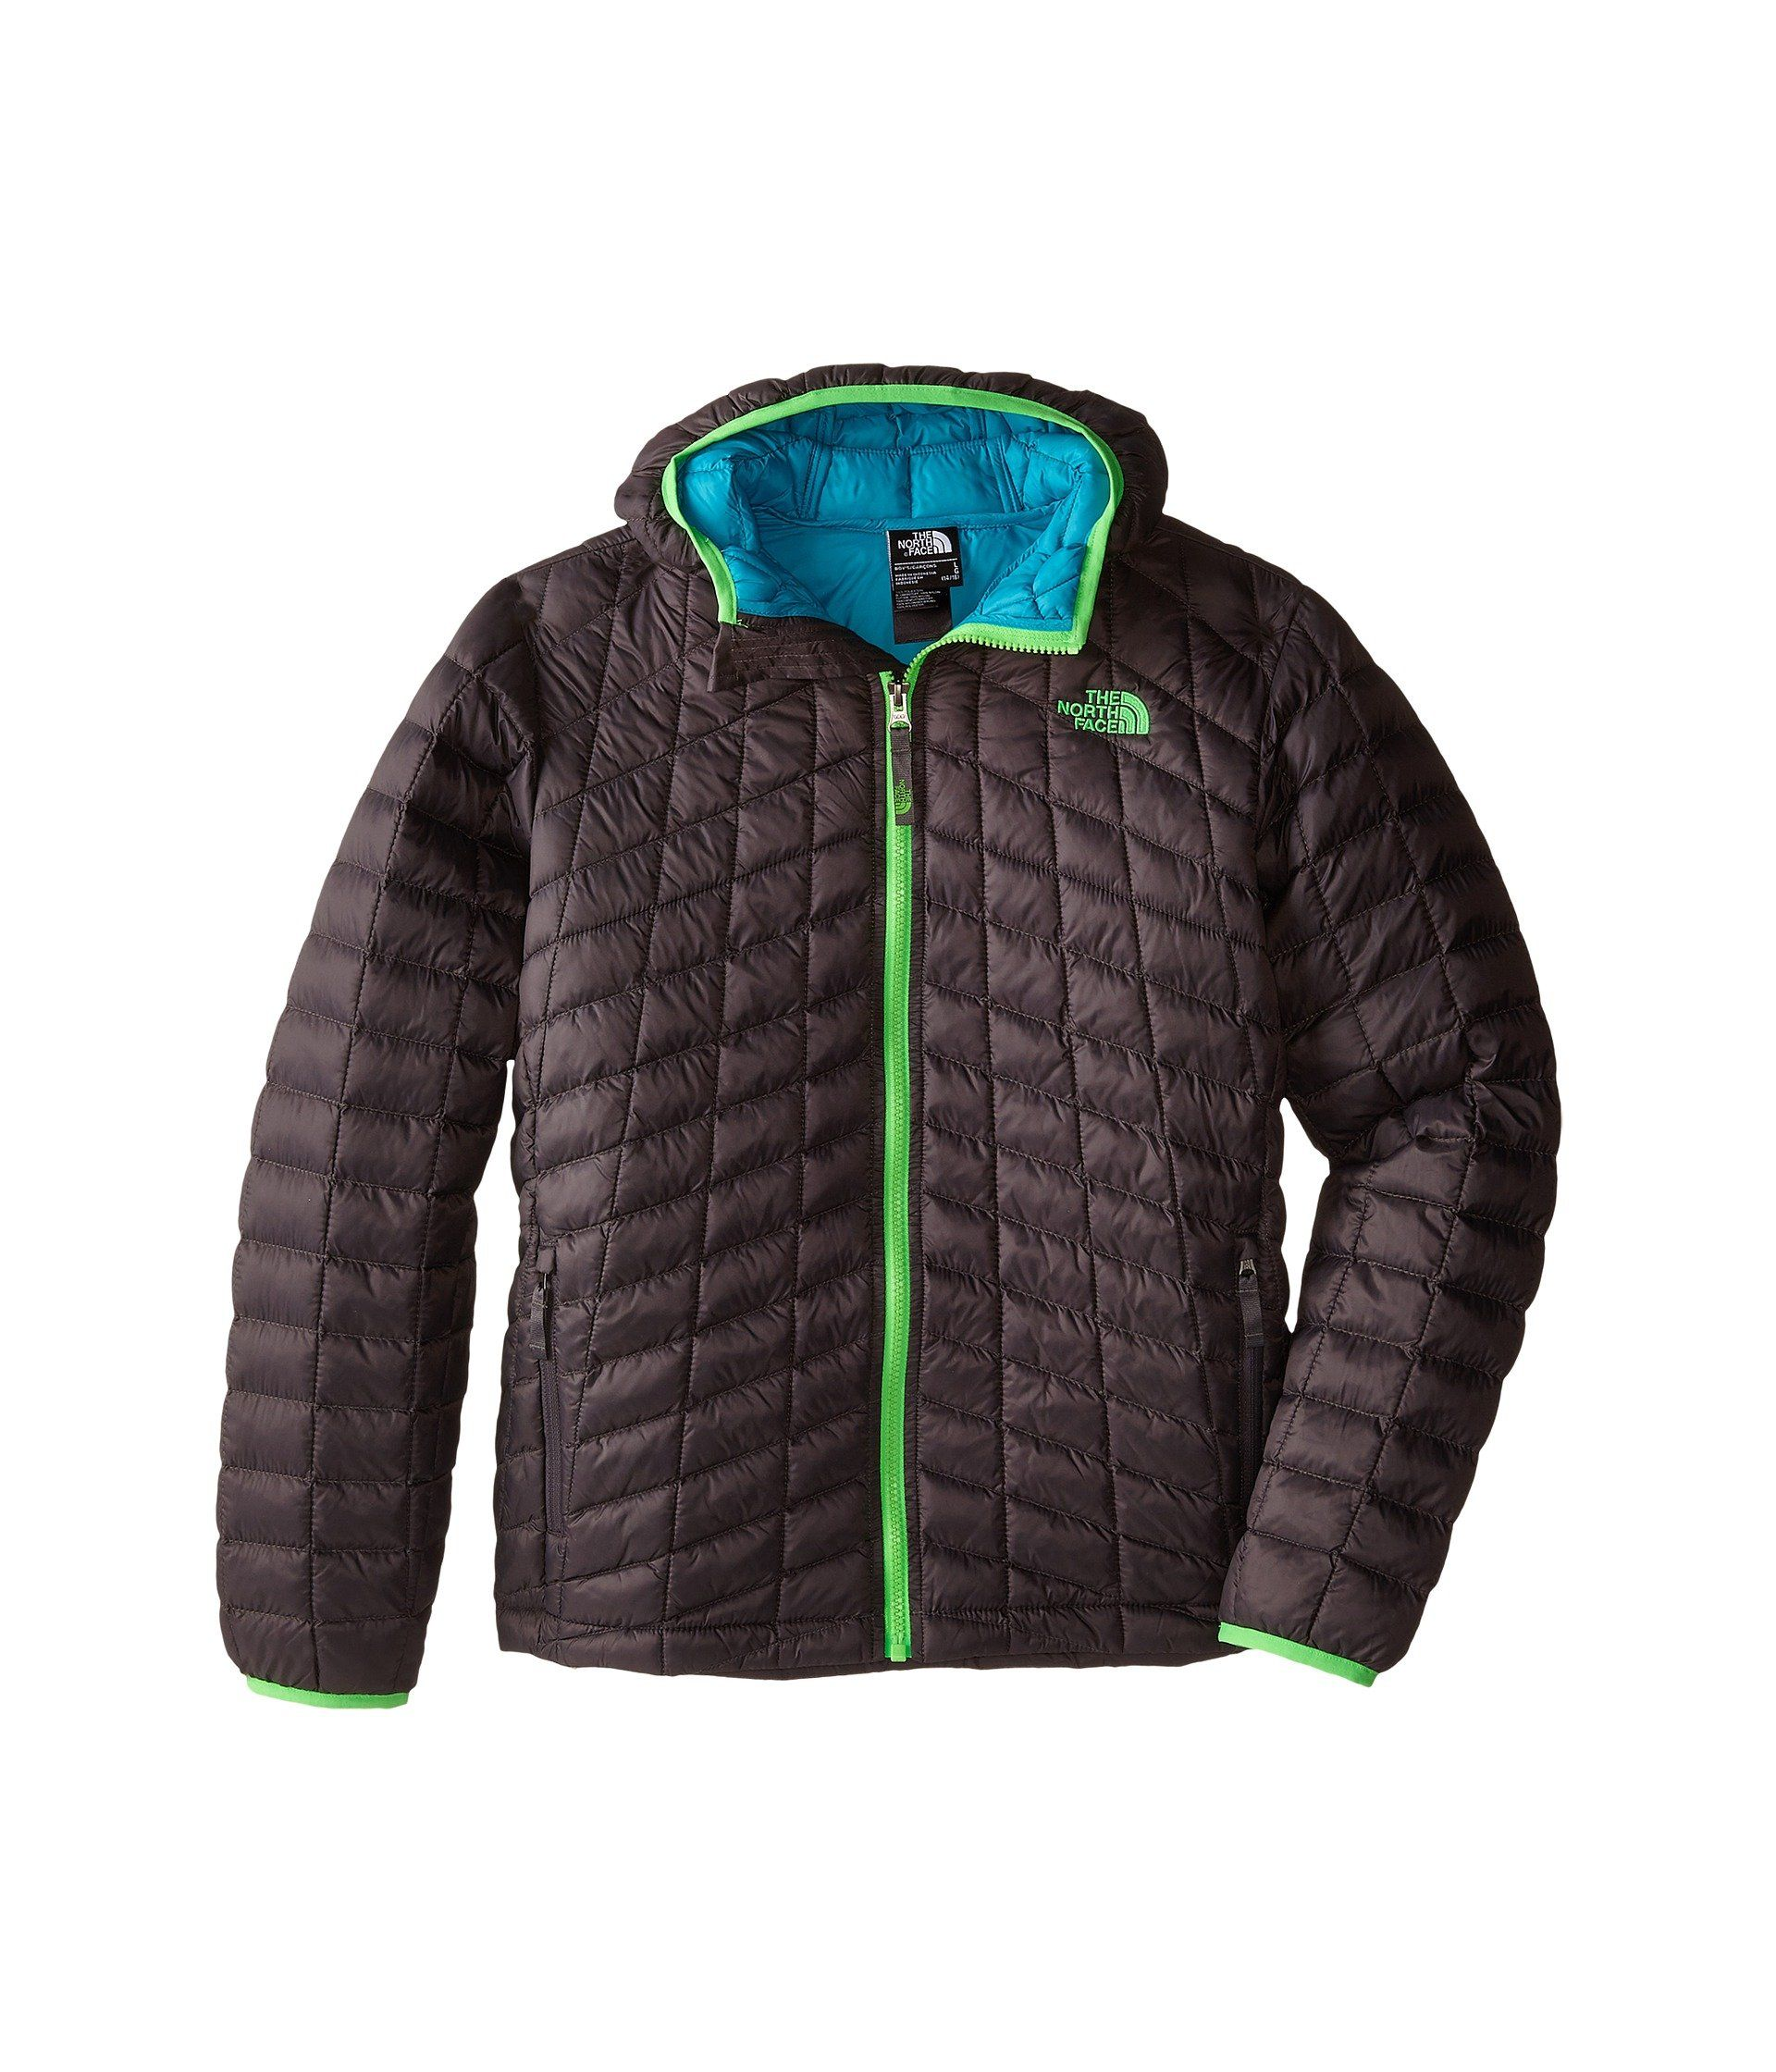 b9b9a688d The North Face Boys B Thermoball Jacket - Graphite Grey. The North ...